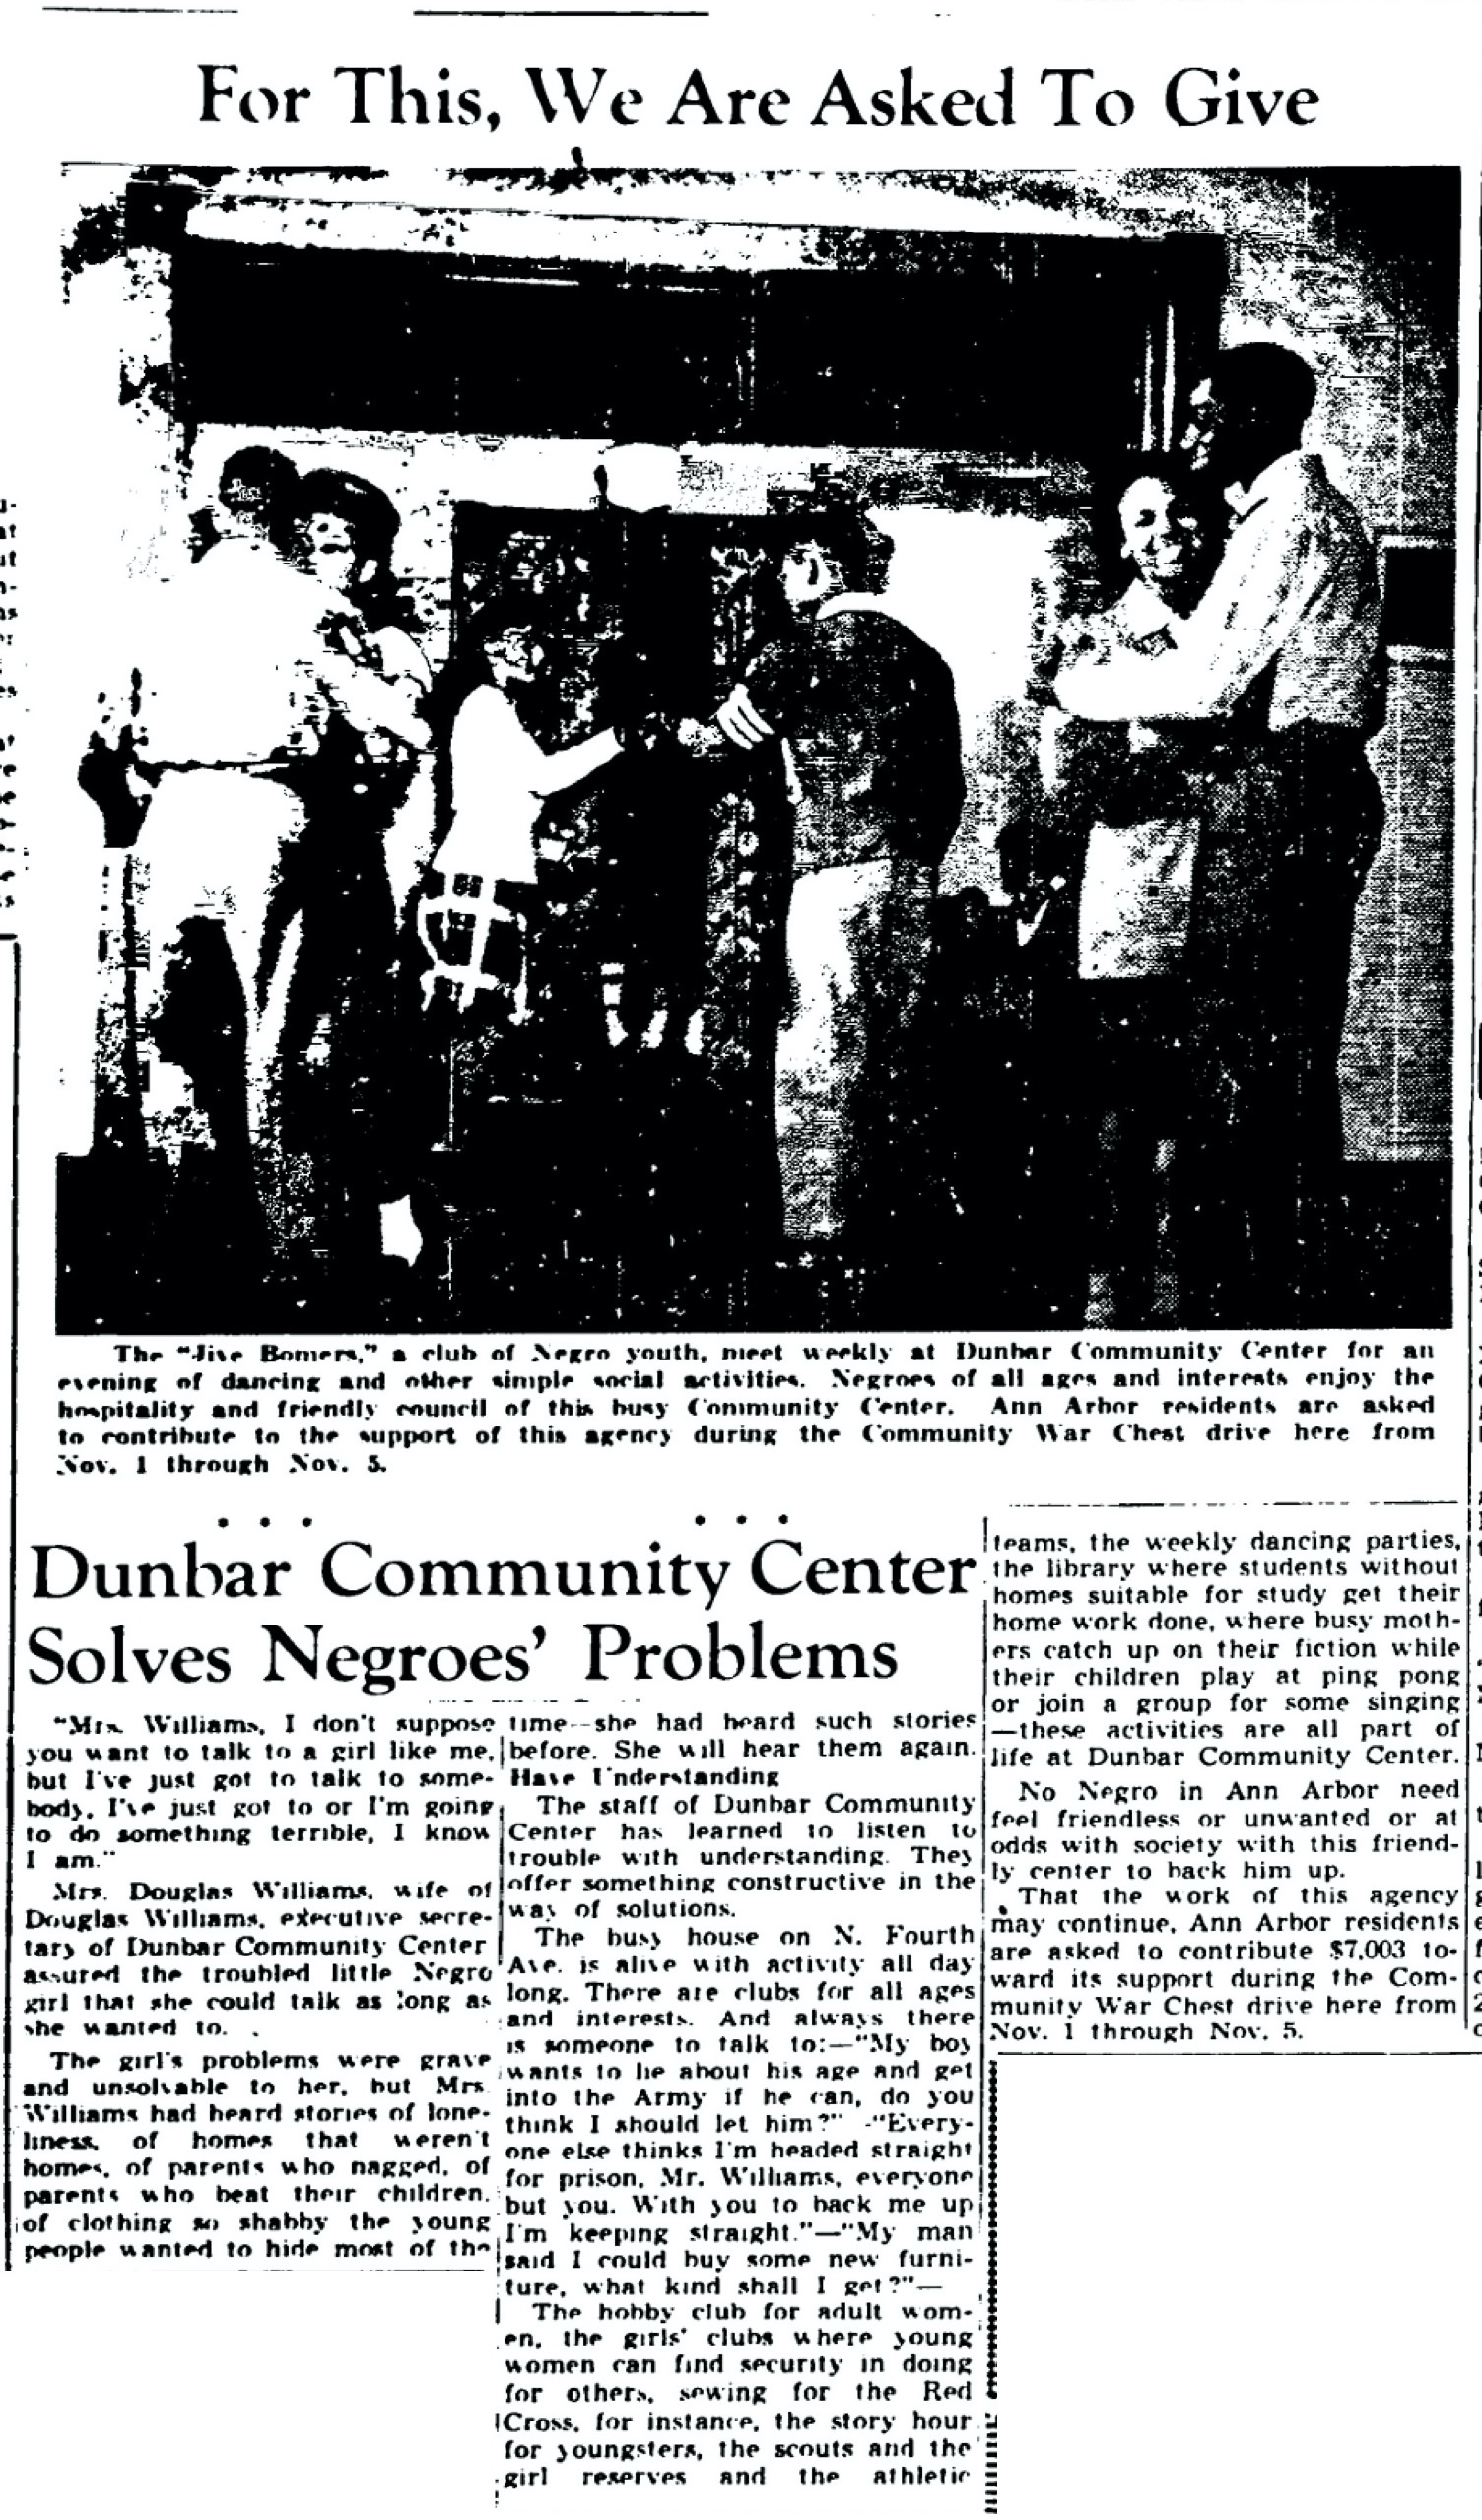 Dunbar Community Center Solves Negroes' Problems image